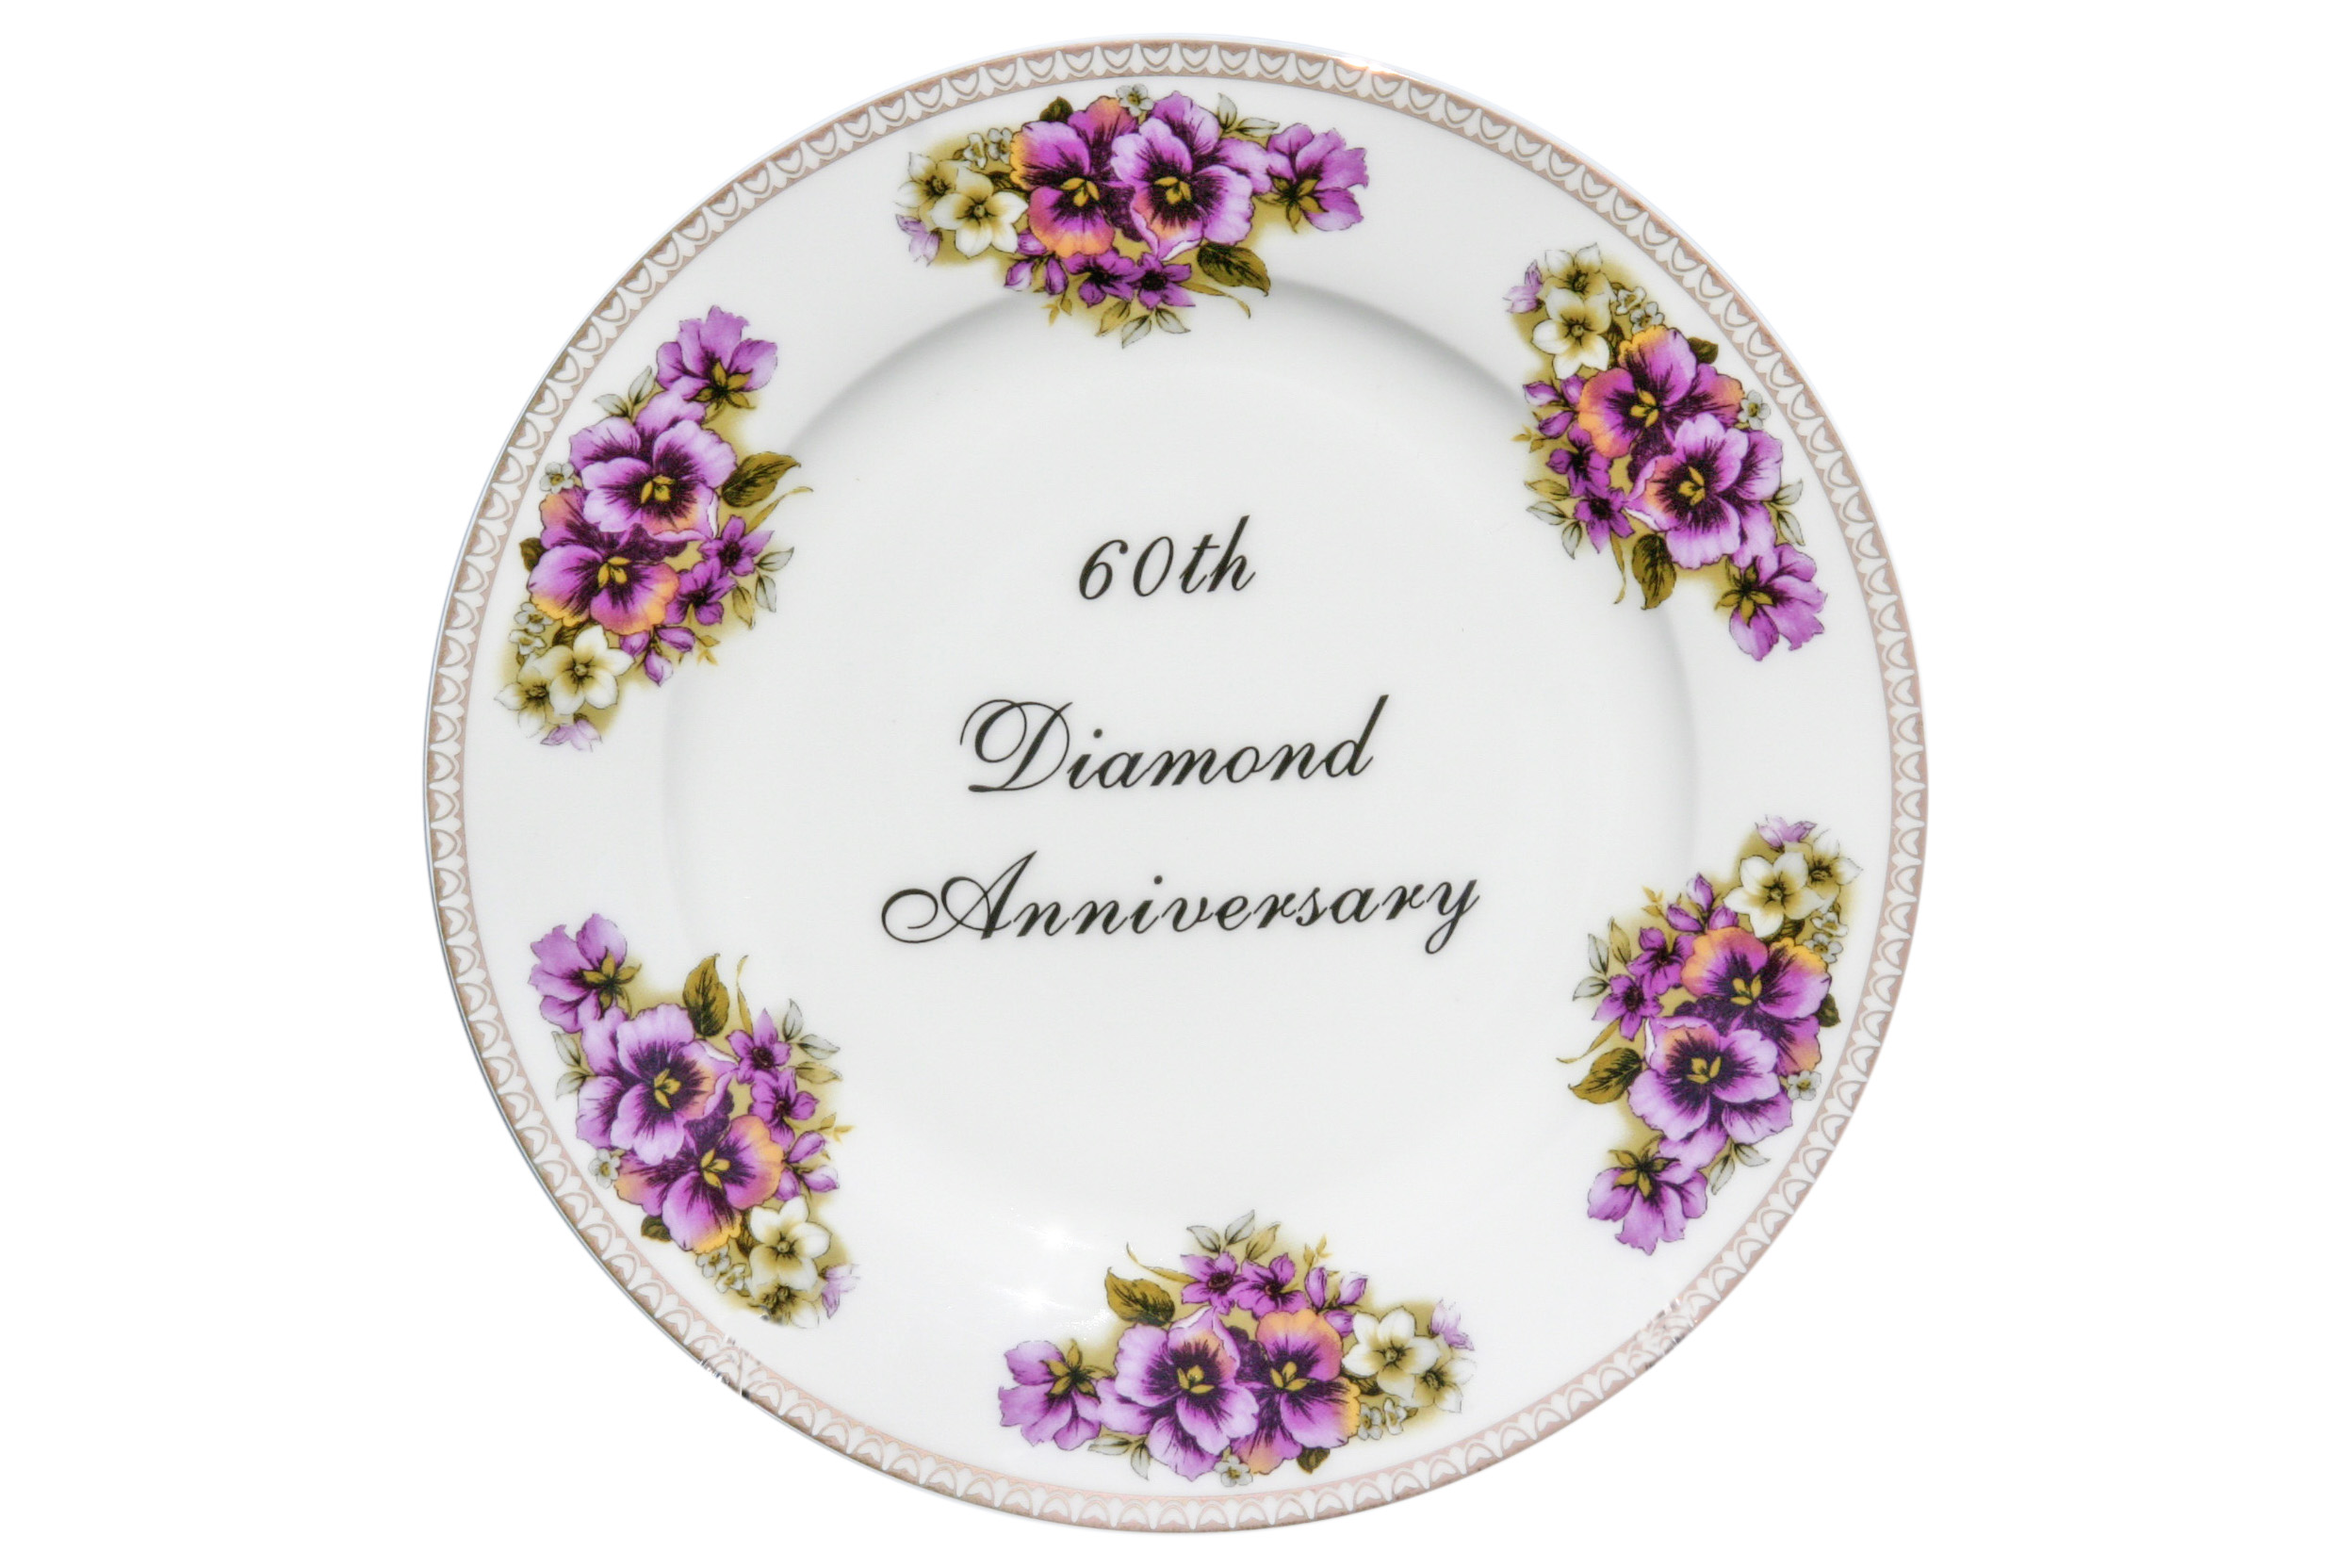 60th Diamond Anniversary Plate